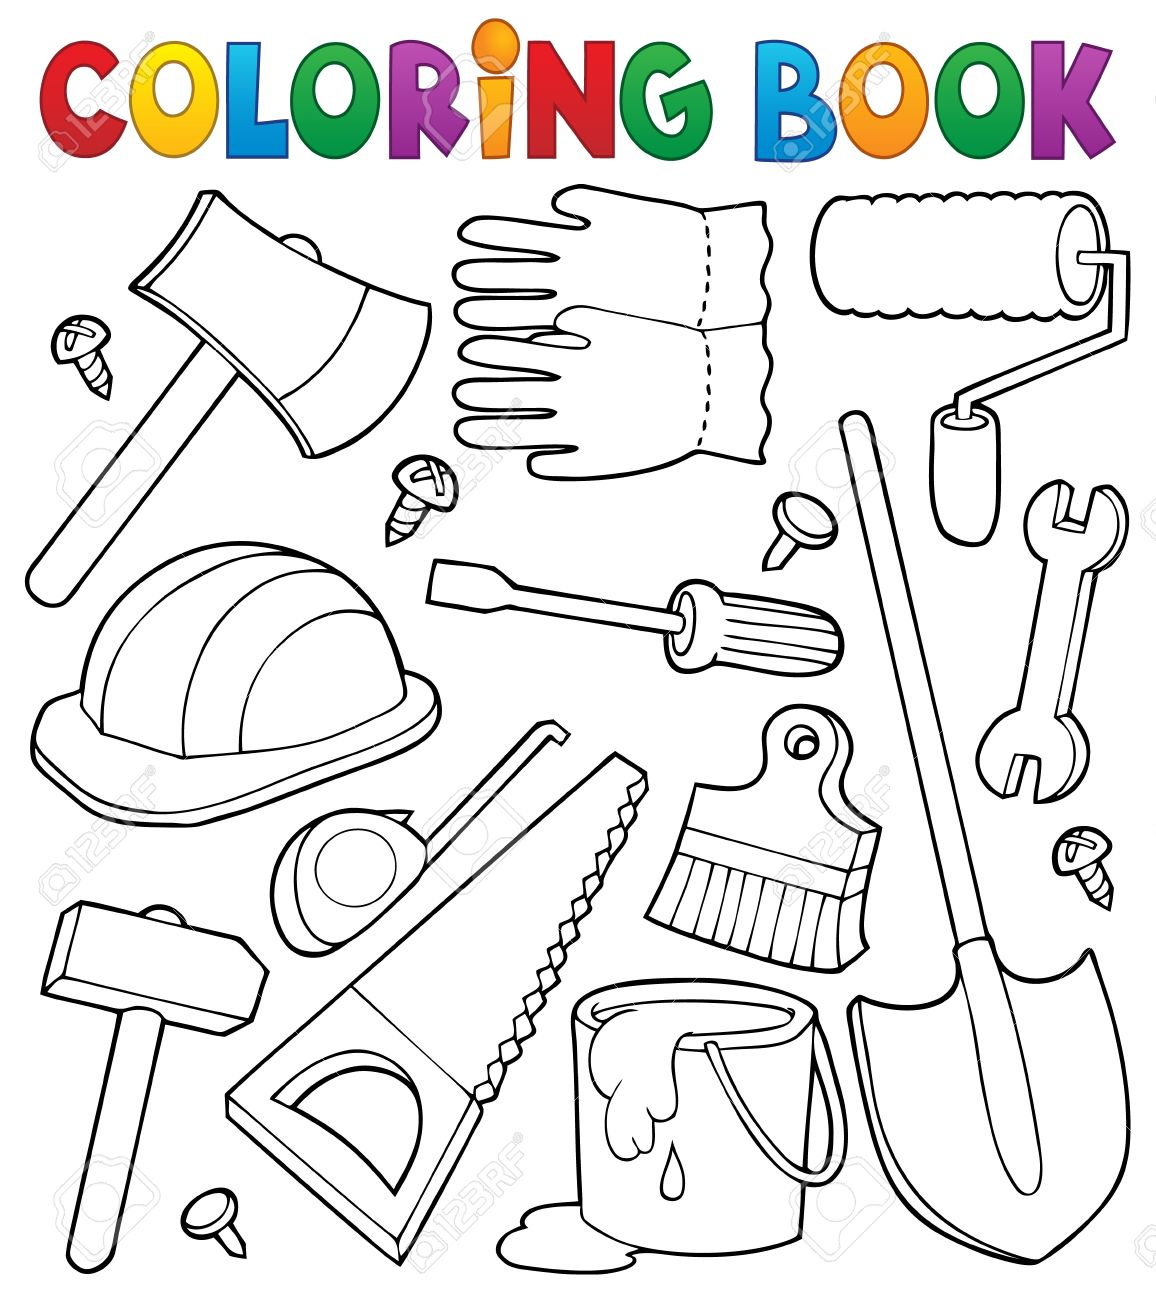 Coloring Book Tools Theme Illustration Stock Vector